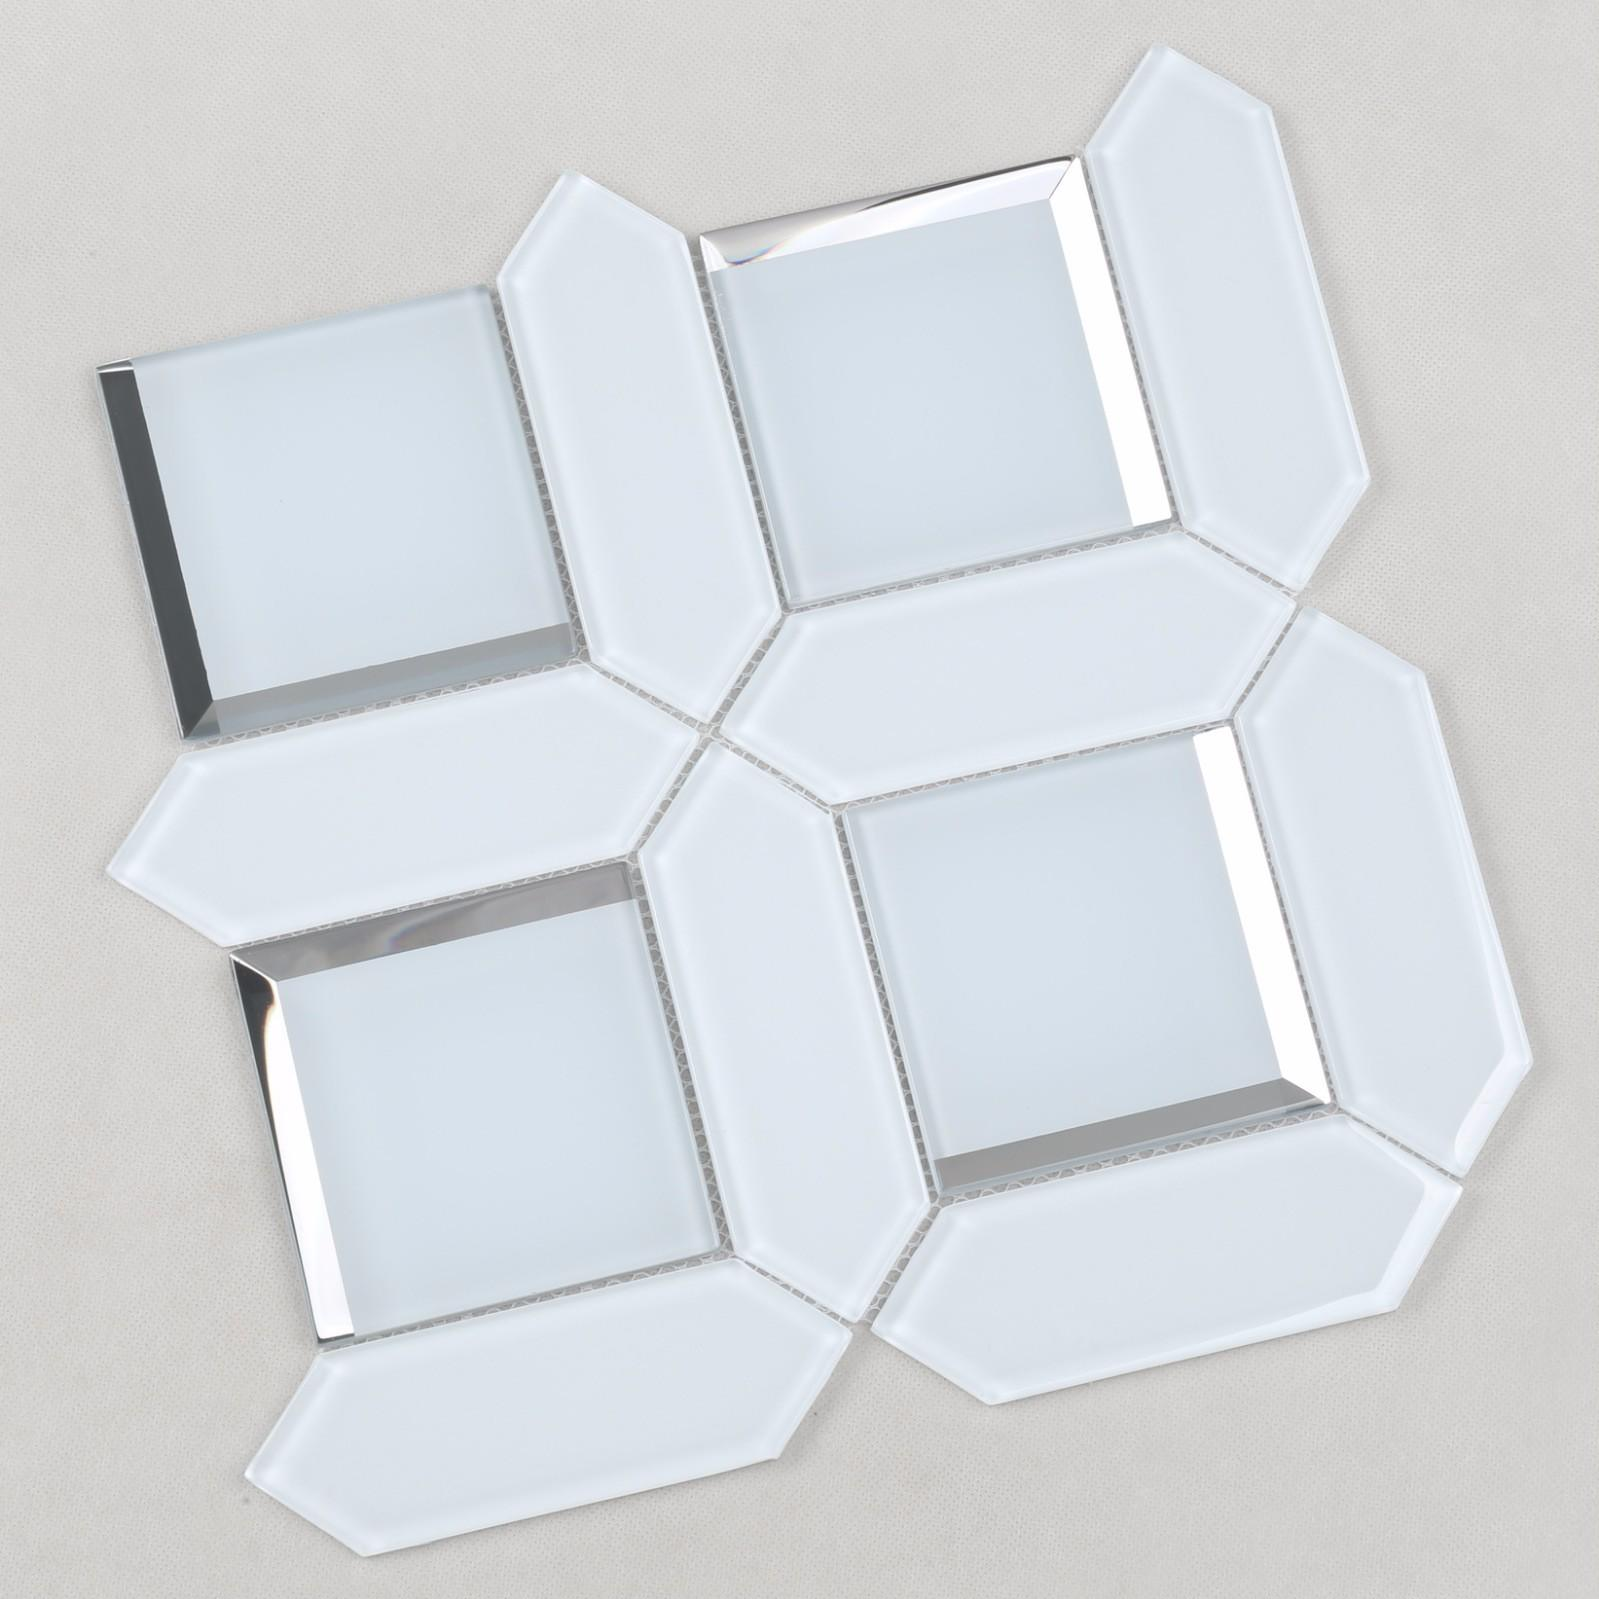 Heng Xing trapezoid glass mosaic tile Supply for kitchen